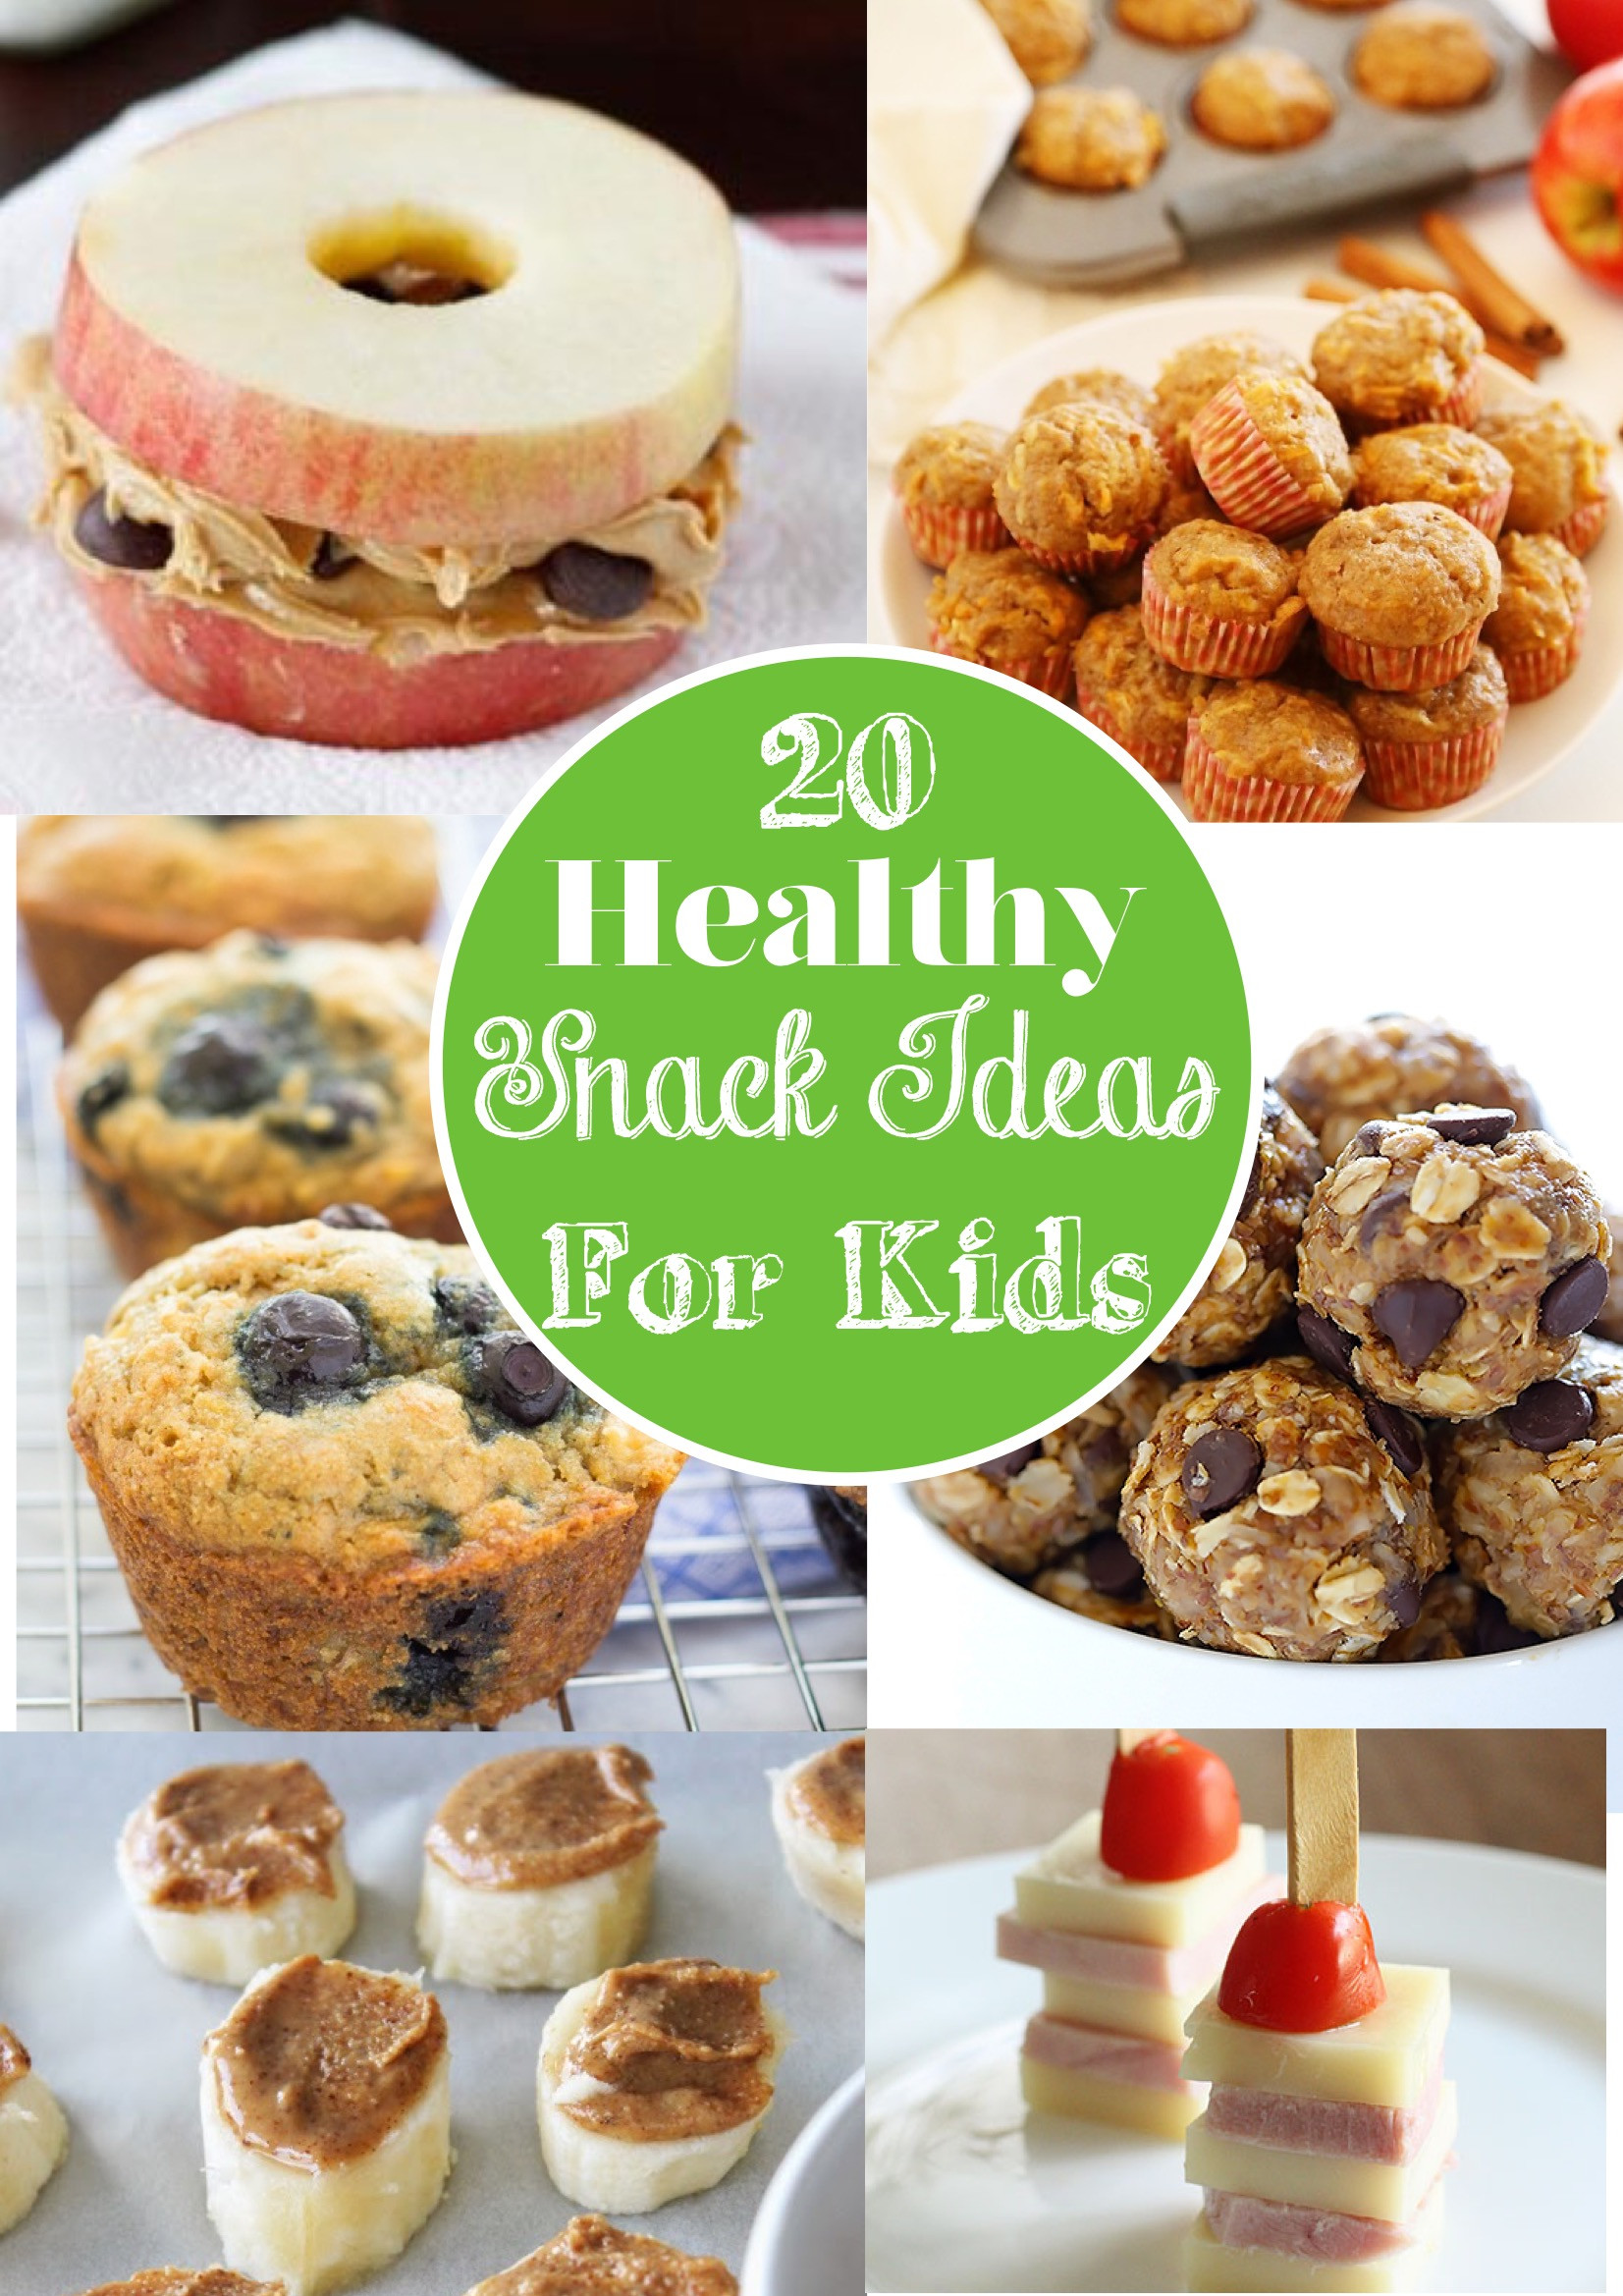 Healthy Snacks For Kids To Make  20 Healthy Snack Ideas For Kids Snack Smart